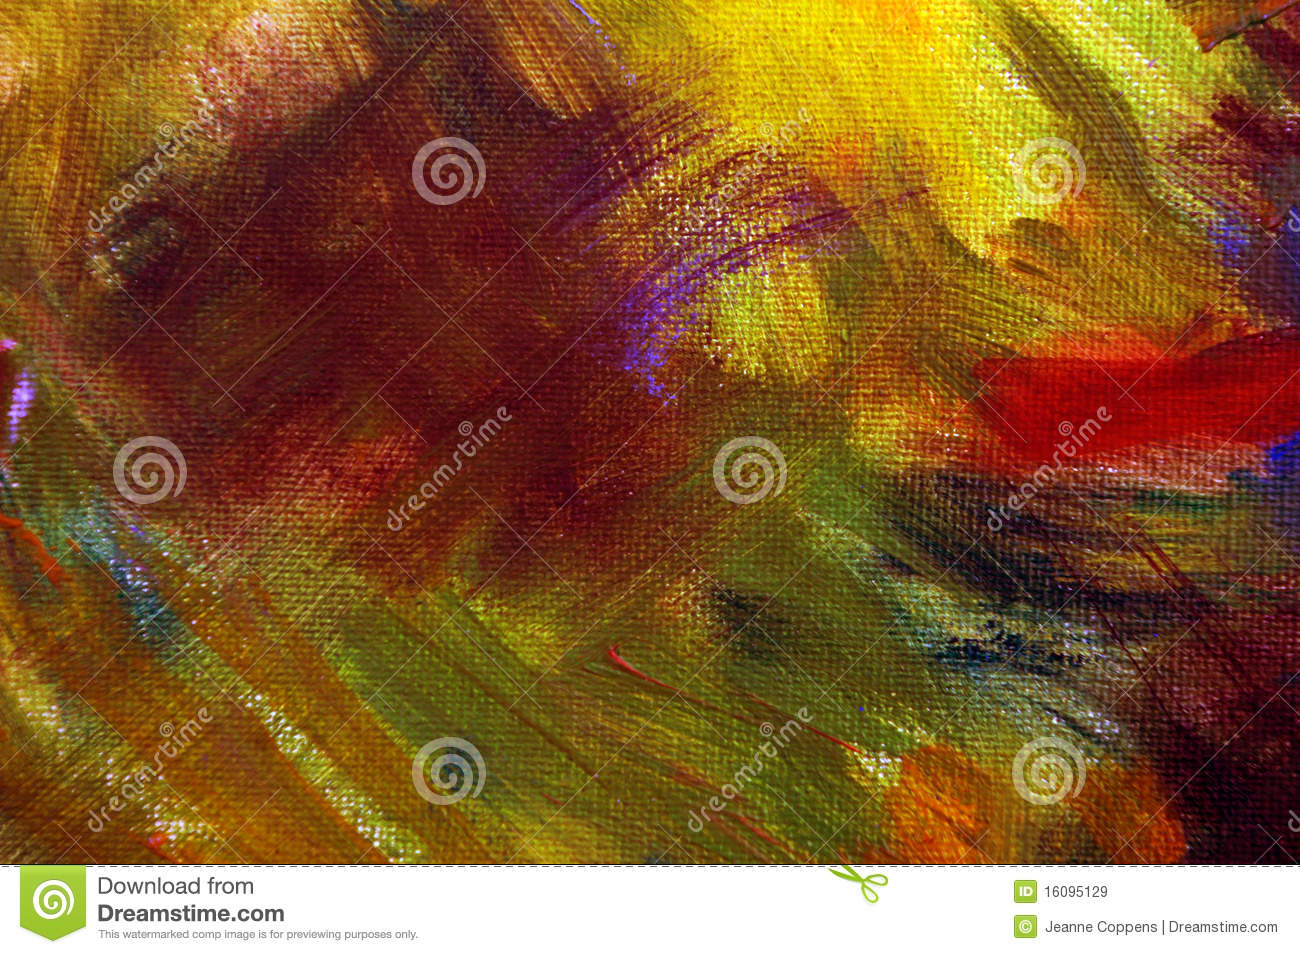 Abstract as background.